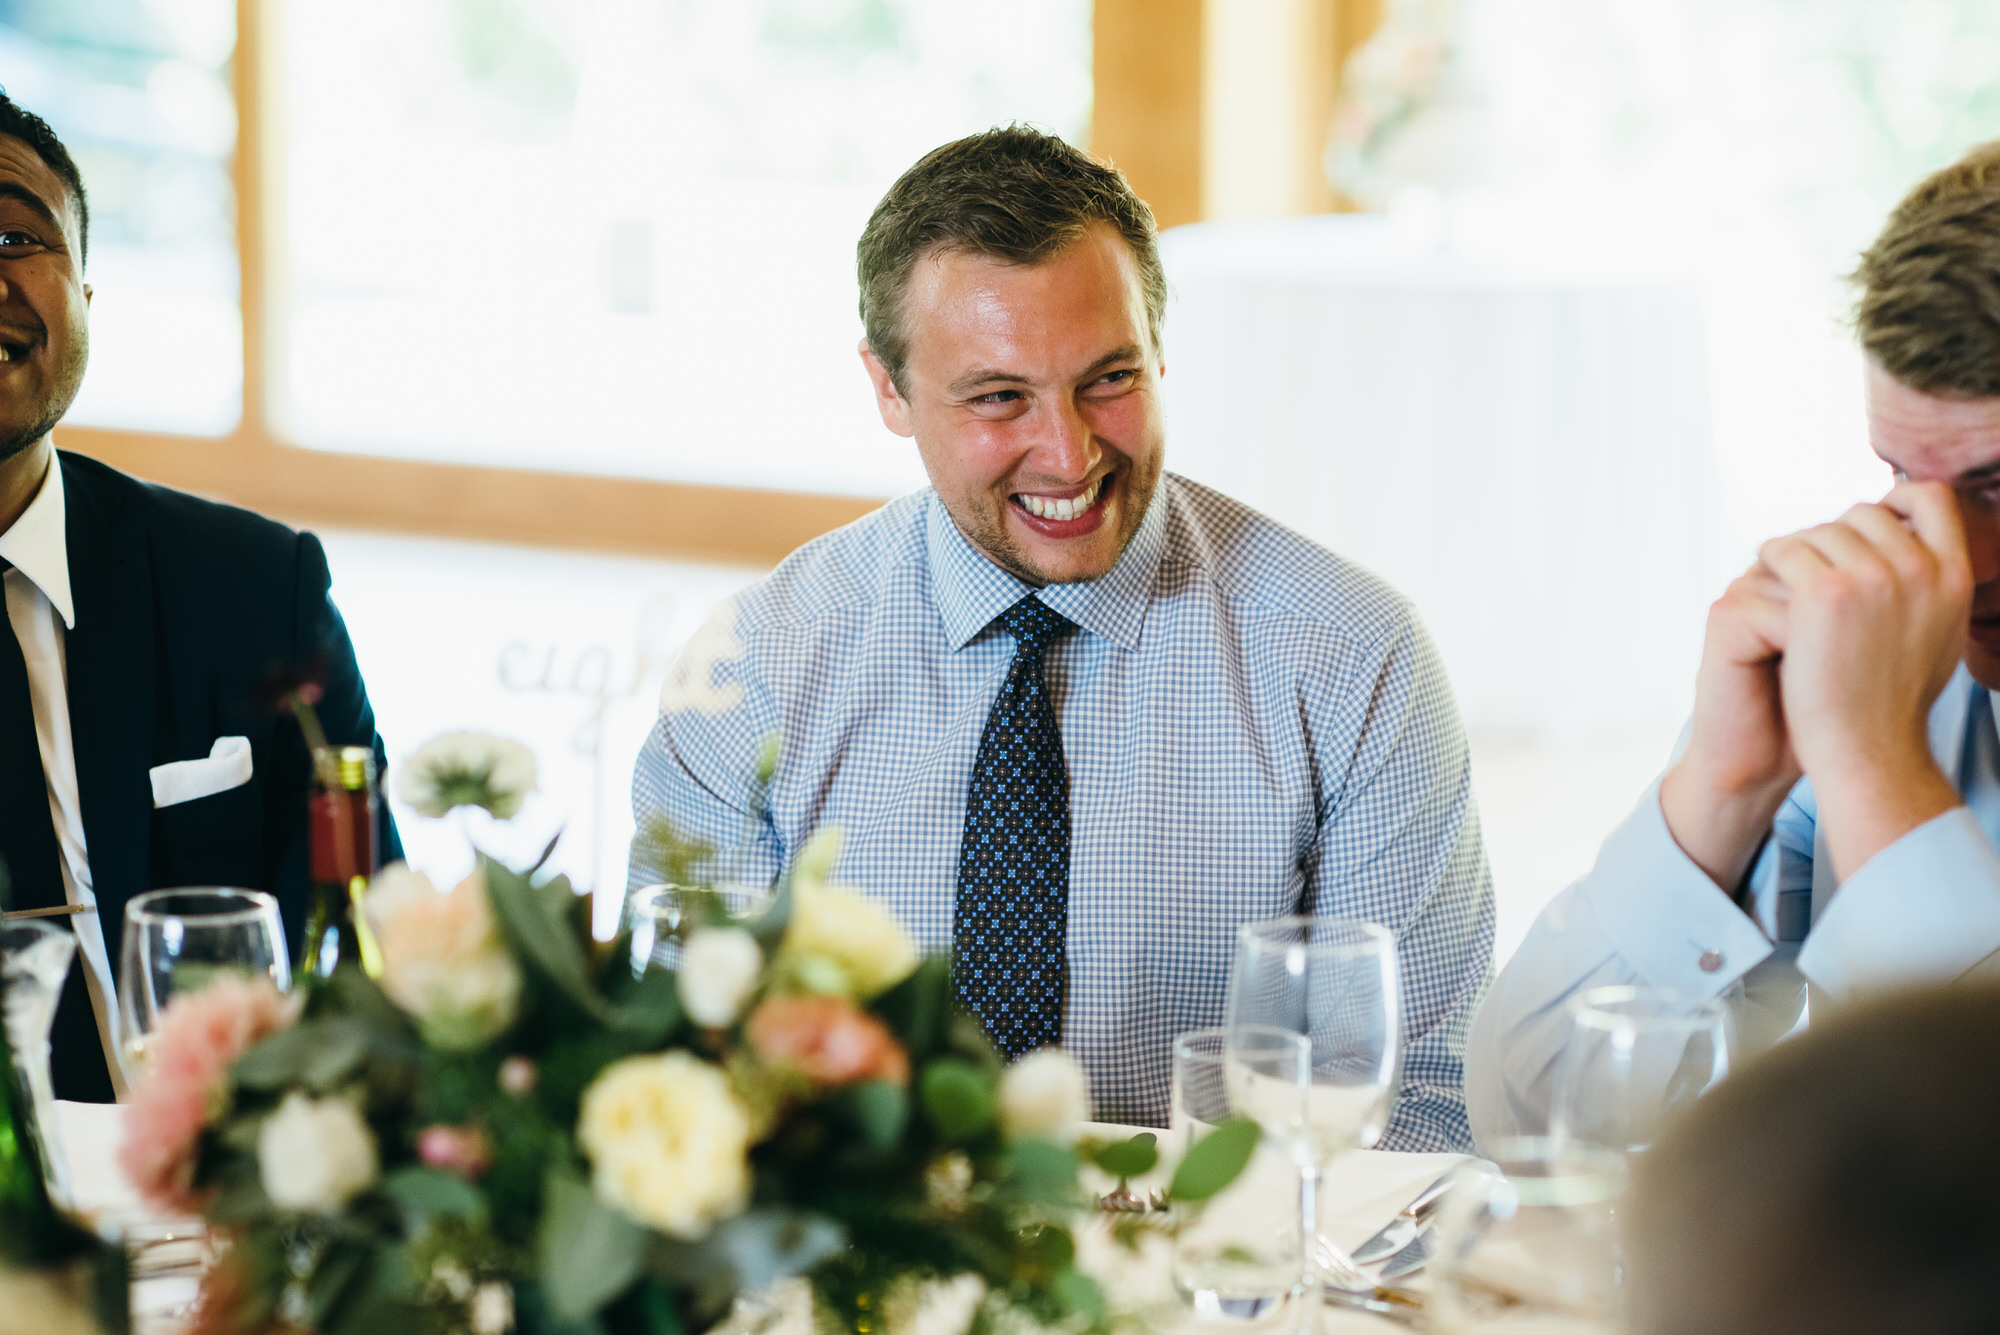 Colville hall wedding by simon biffen photography 36